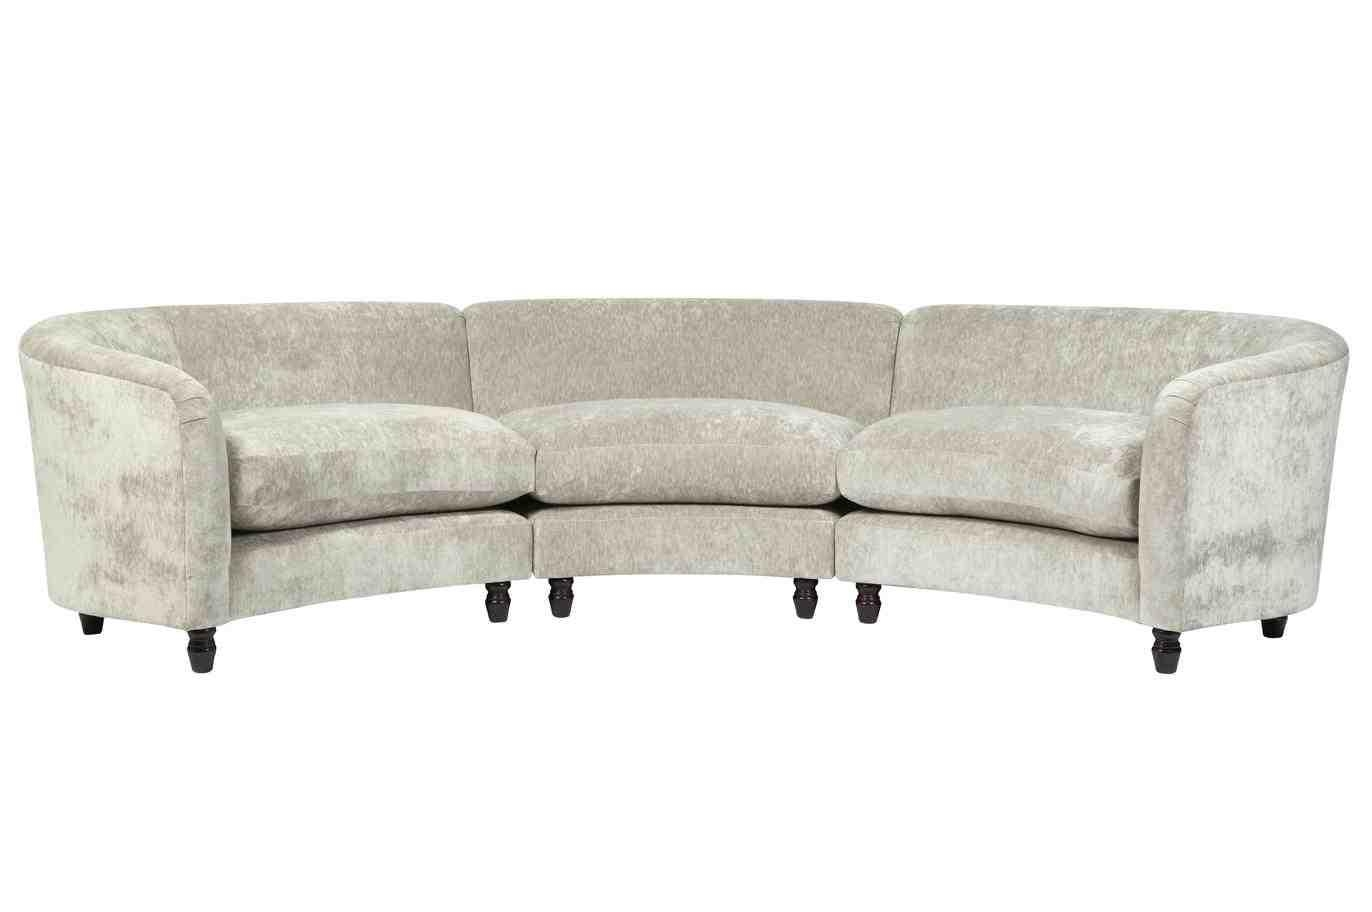 small loveseat sectional sofa george smith sofas nyc 2018 latest curved ideas